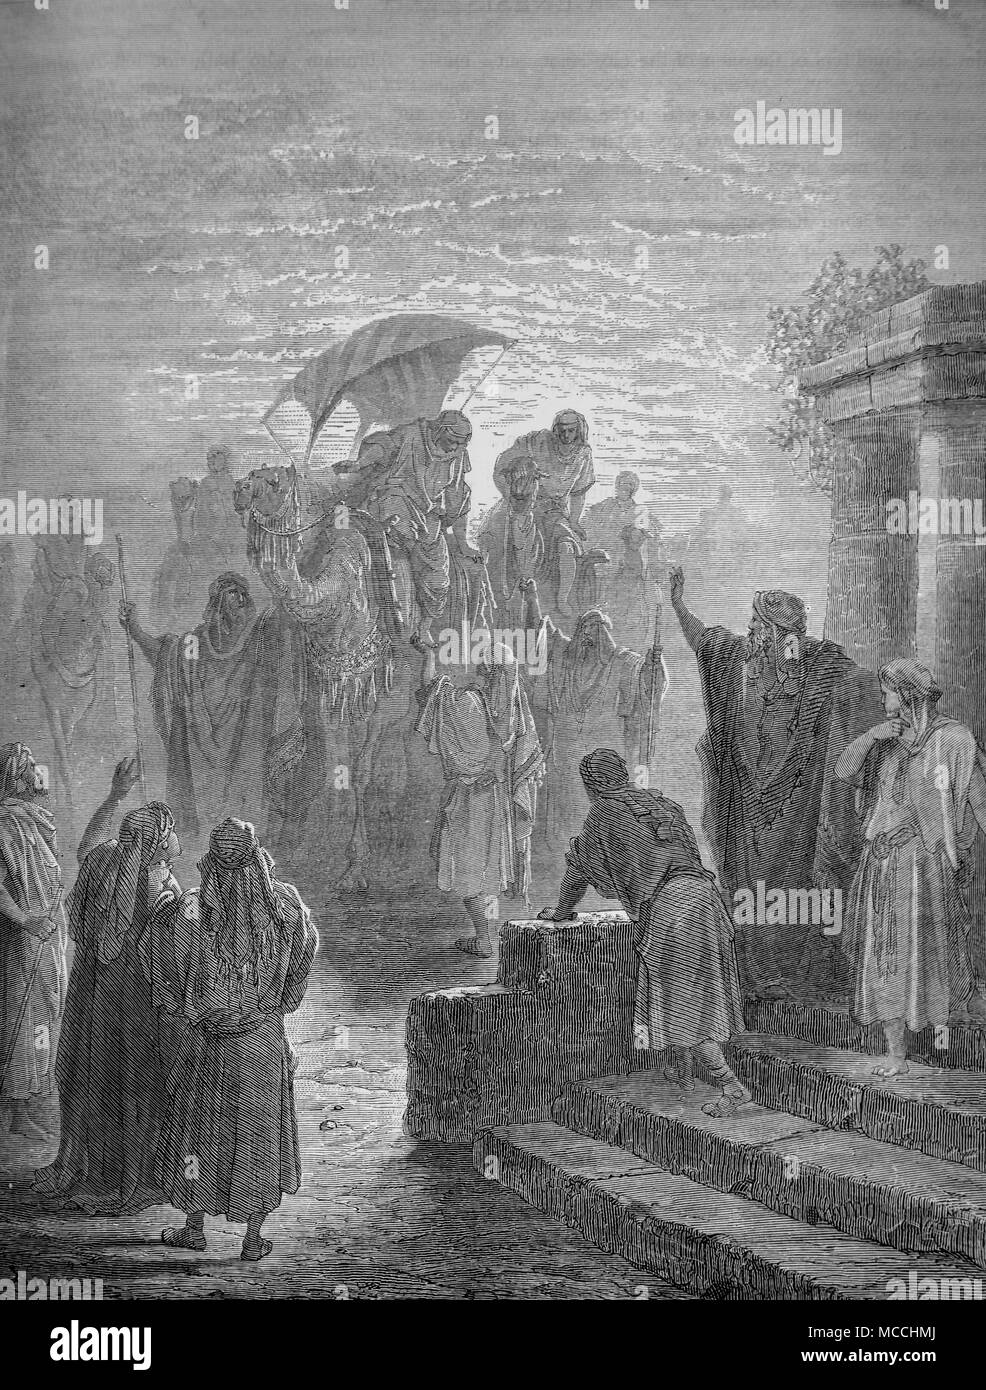 The Meeting of Isaac and Rebecca. Bible illustration by Gustave Doré. - Stock Image